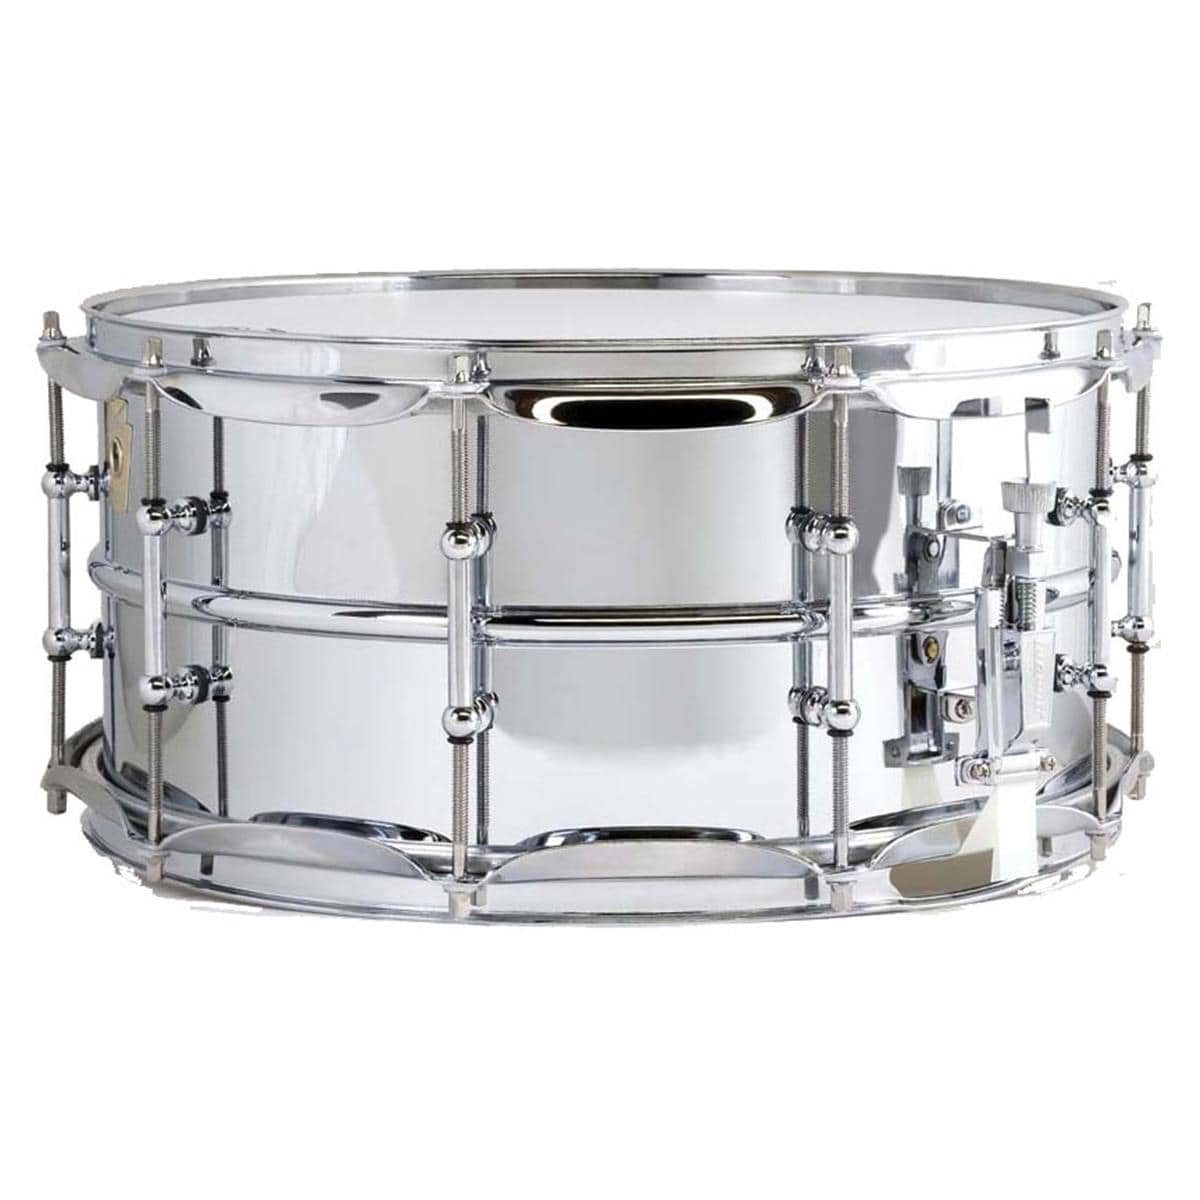 "Ludwig LM402 Smooth Chrome Plated Aluminum 6.5"" x 14"" Snare Drum w/ Imperial Lugs & Supra-Phonic Strainer"